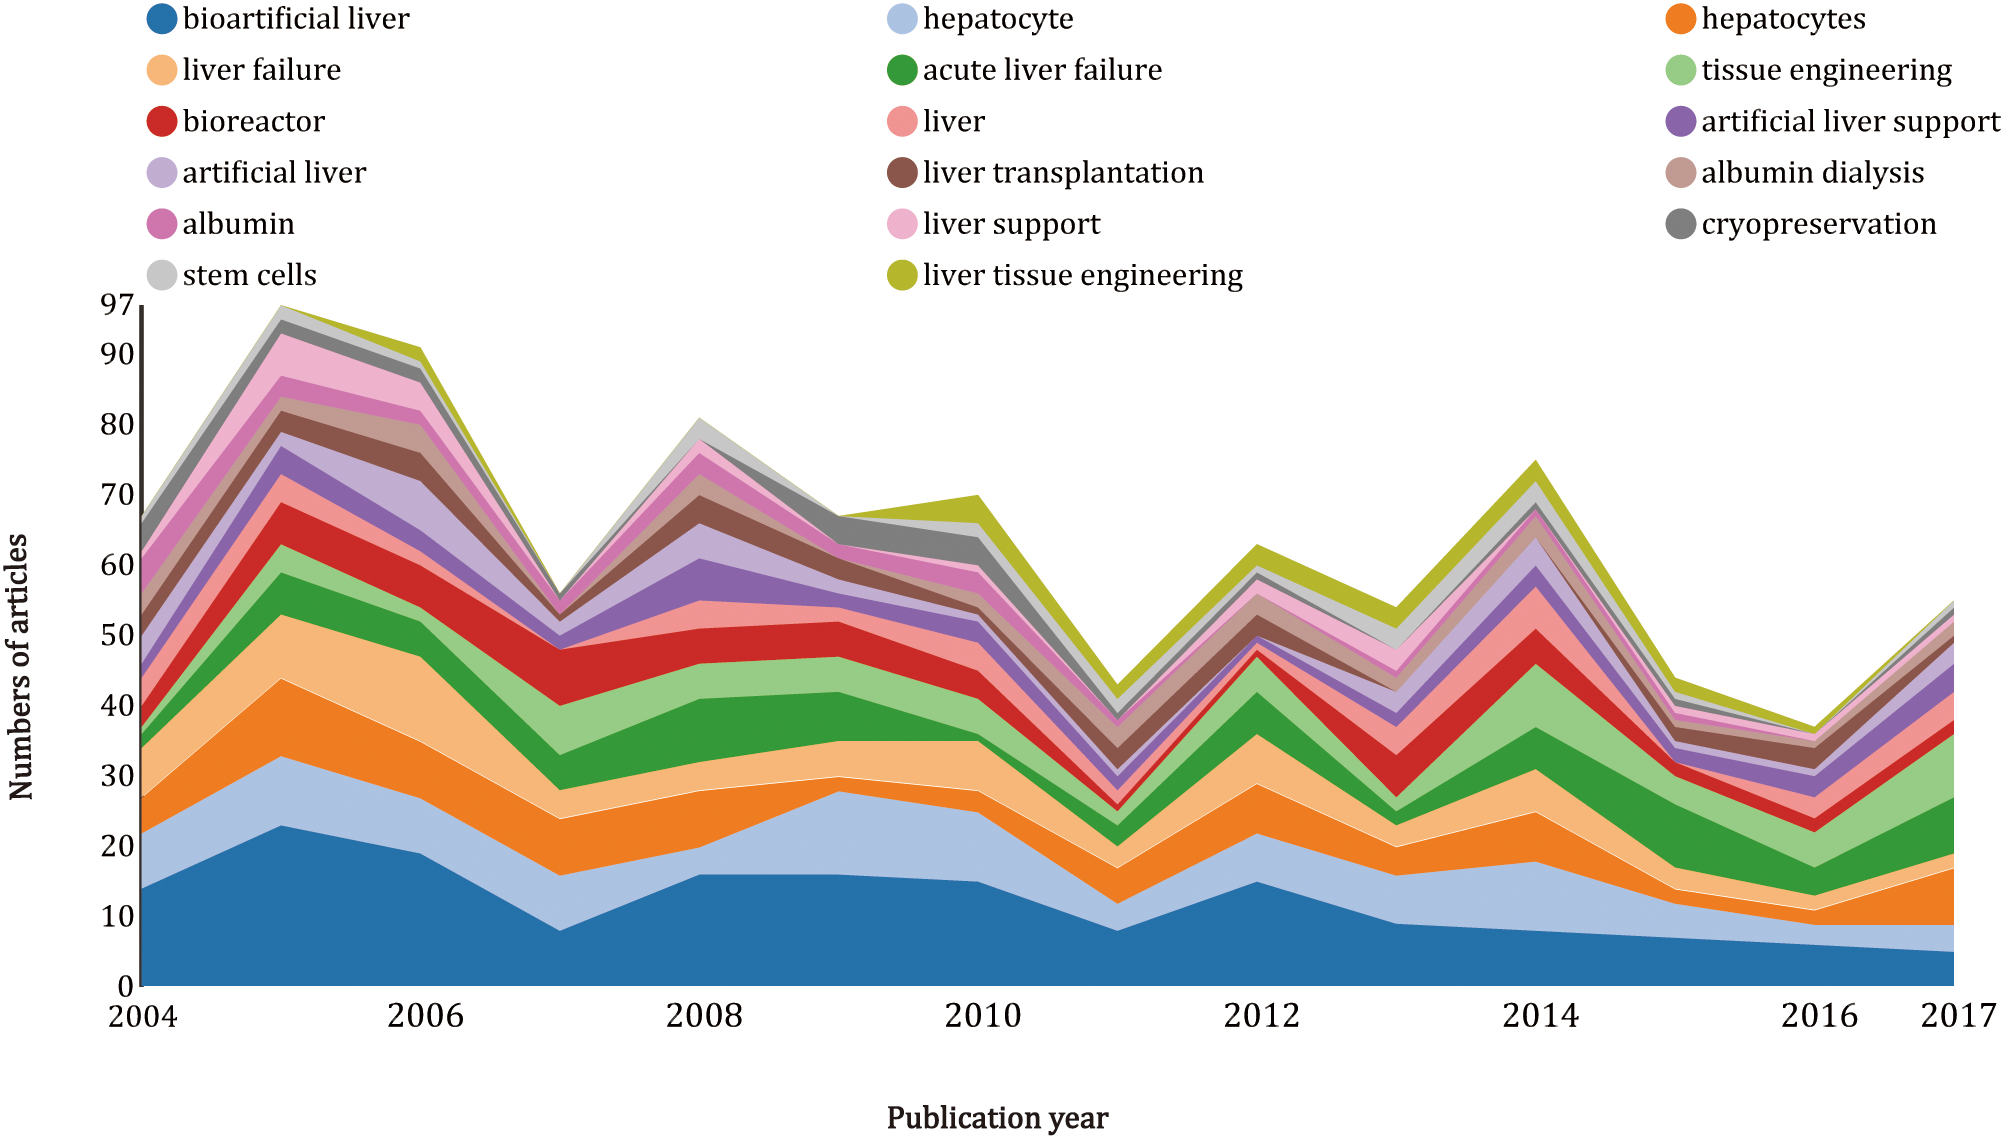 Artificial liver research output and citations from 2004 to